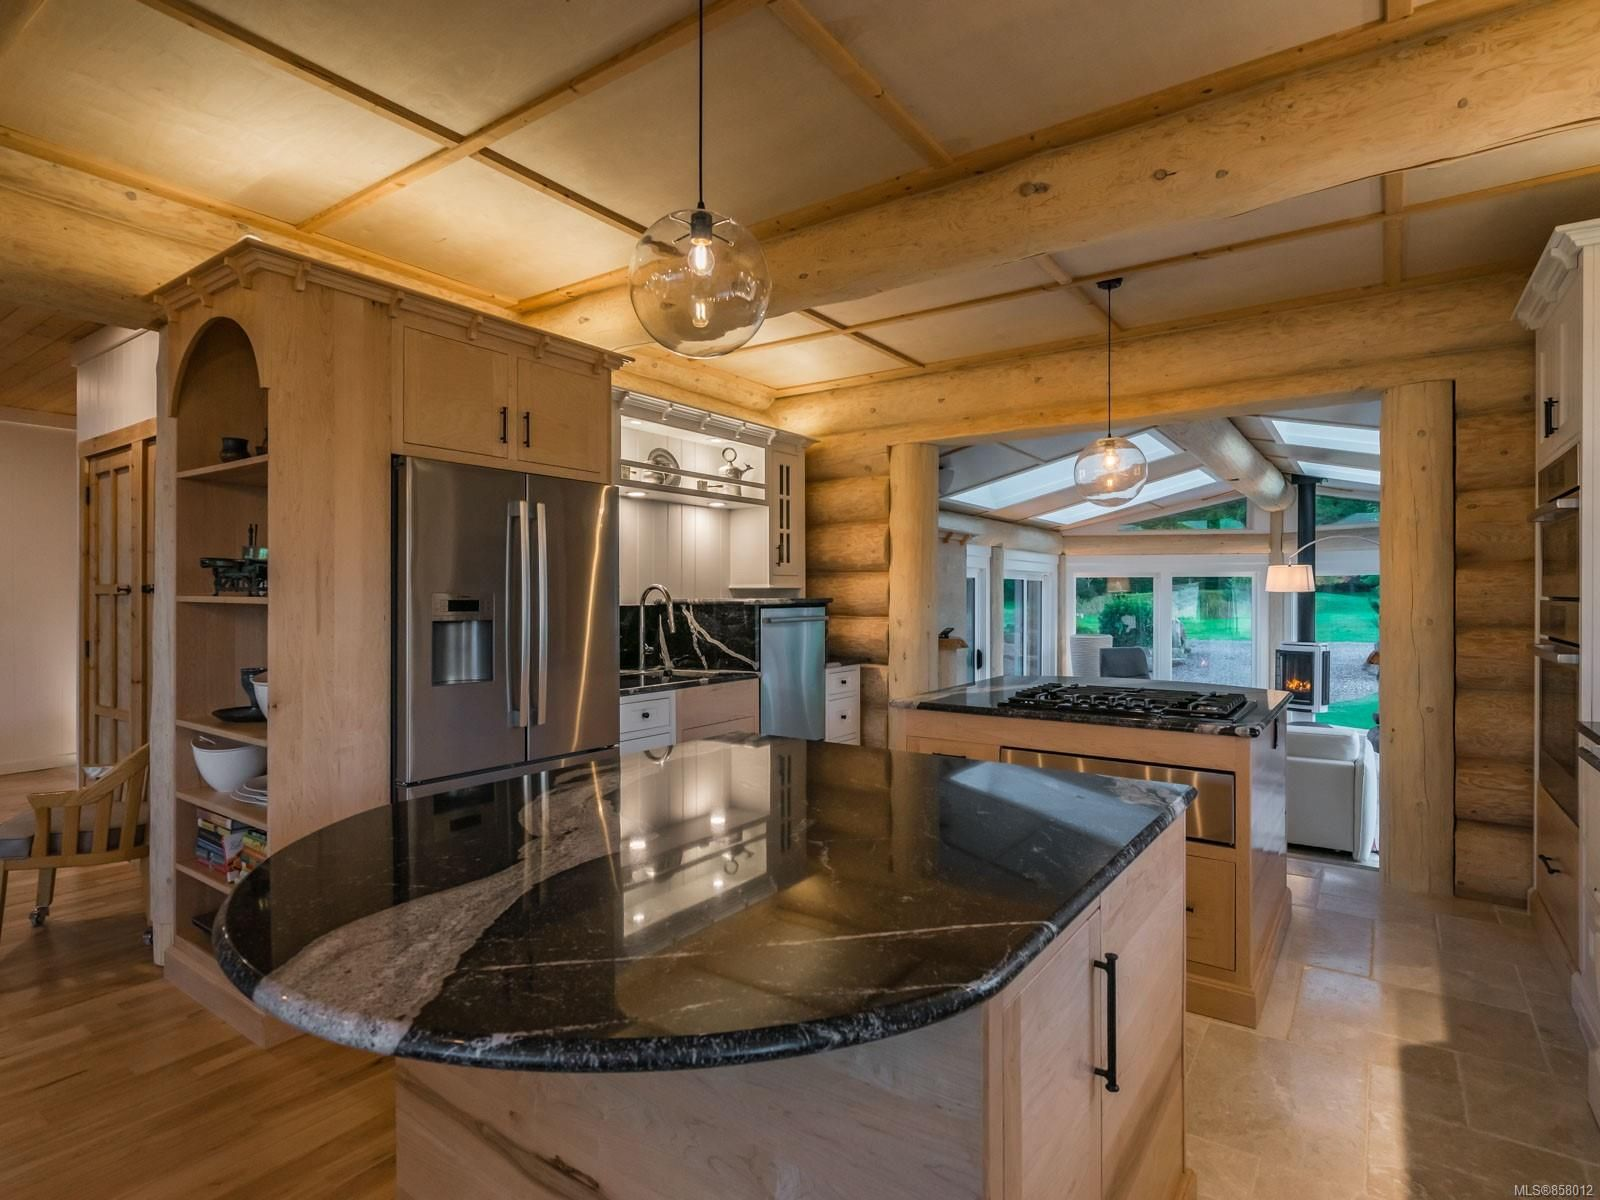 Photo 24: Photos: 6030 MINE Rd in : NI Port McNeill House for sale (North Island)  : MLS®# 858012